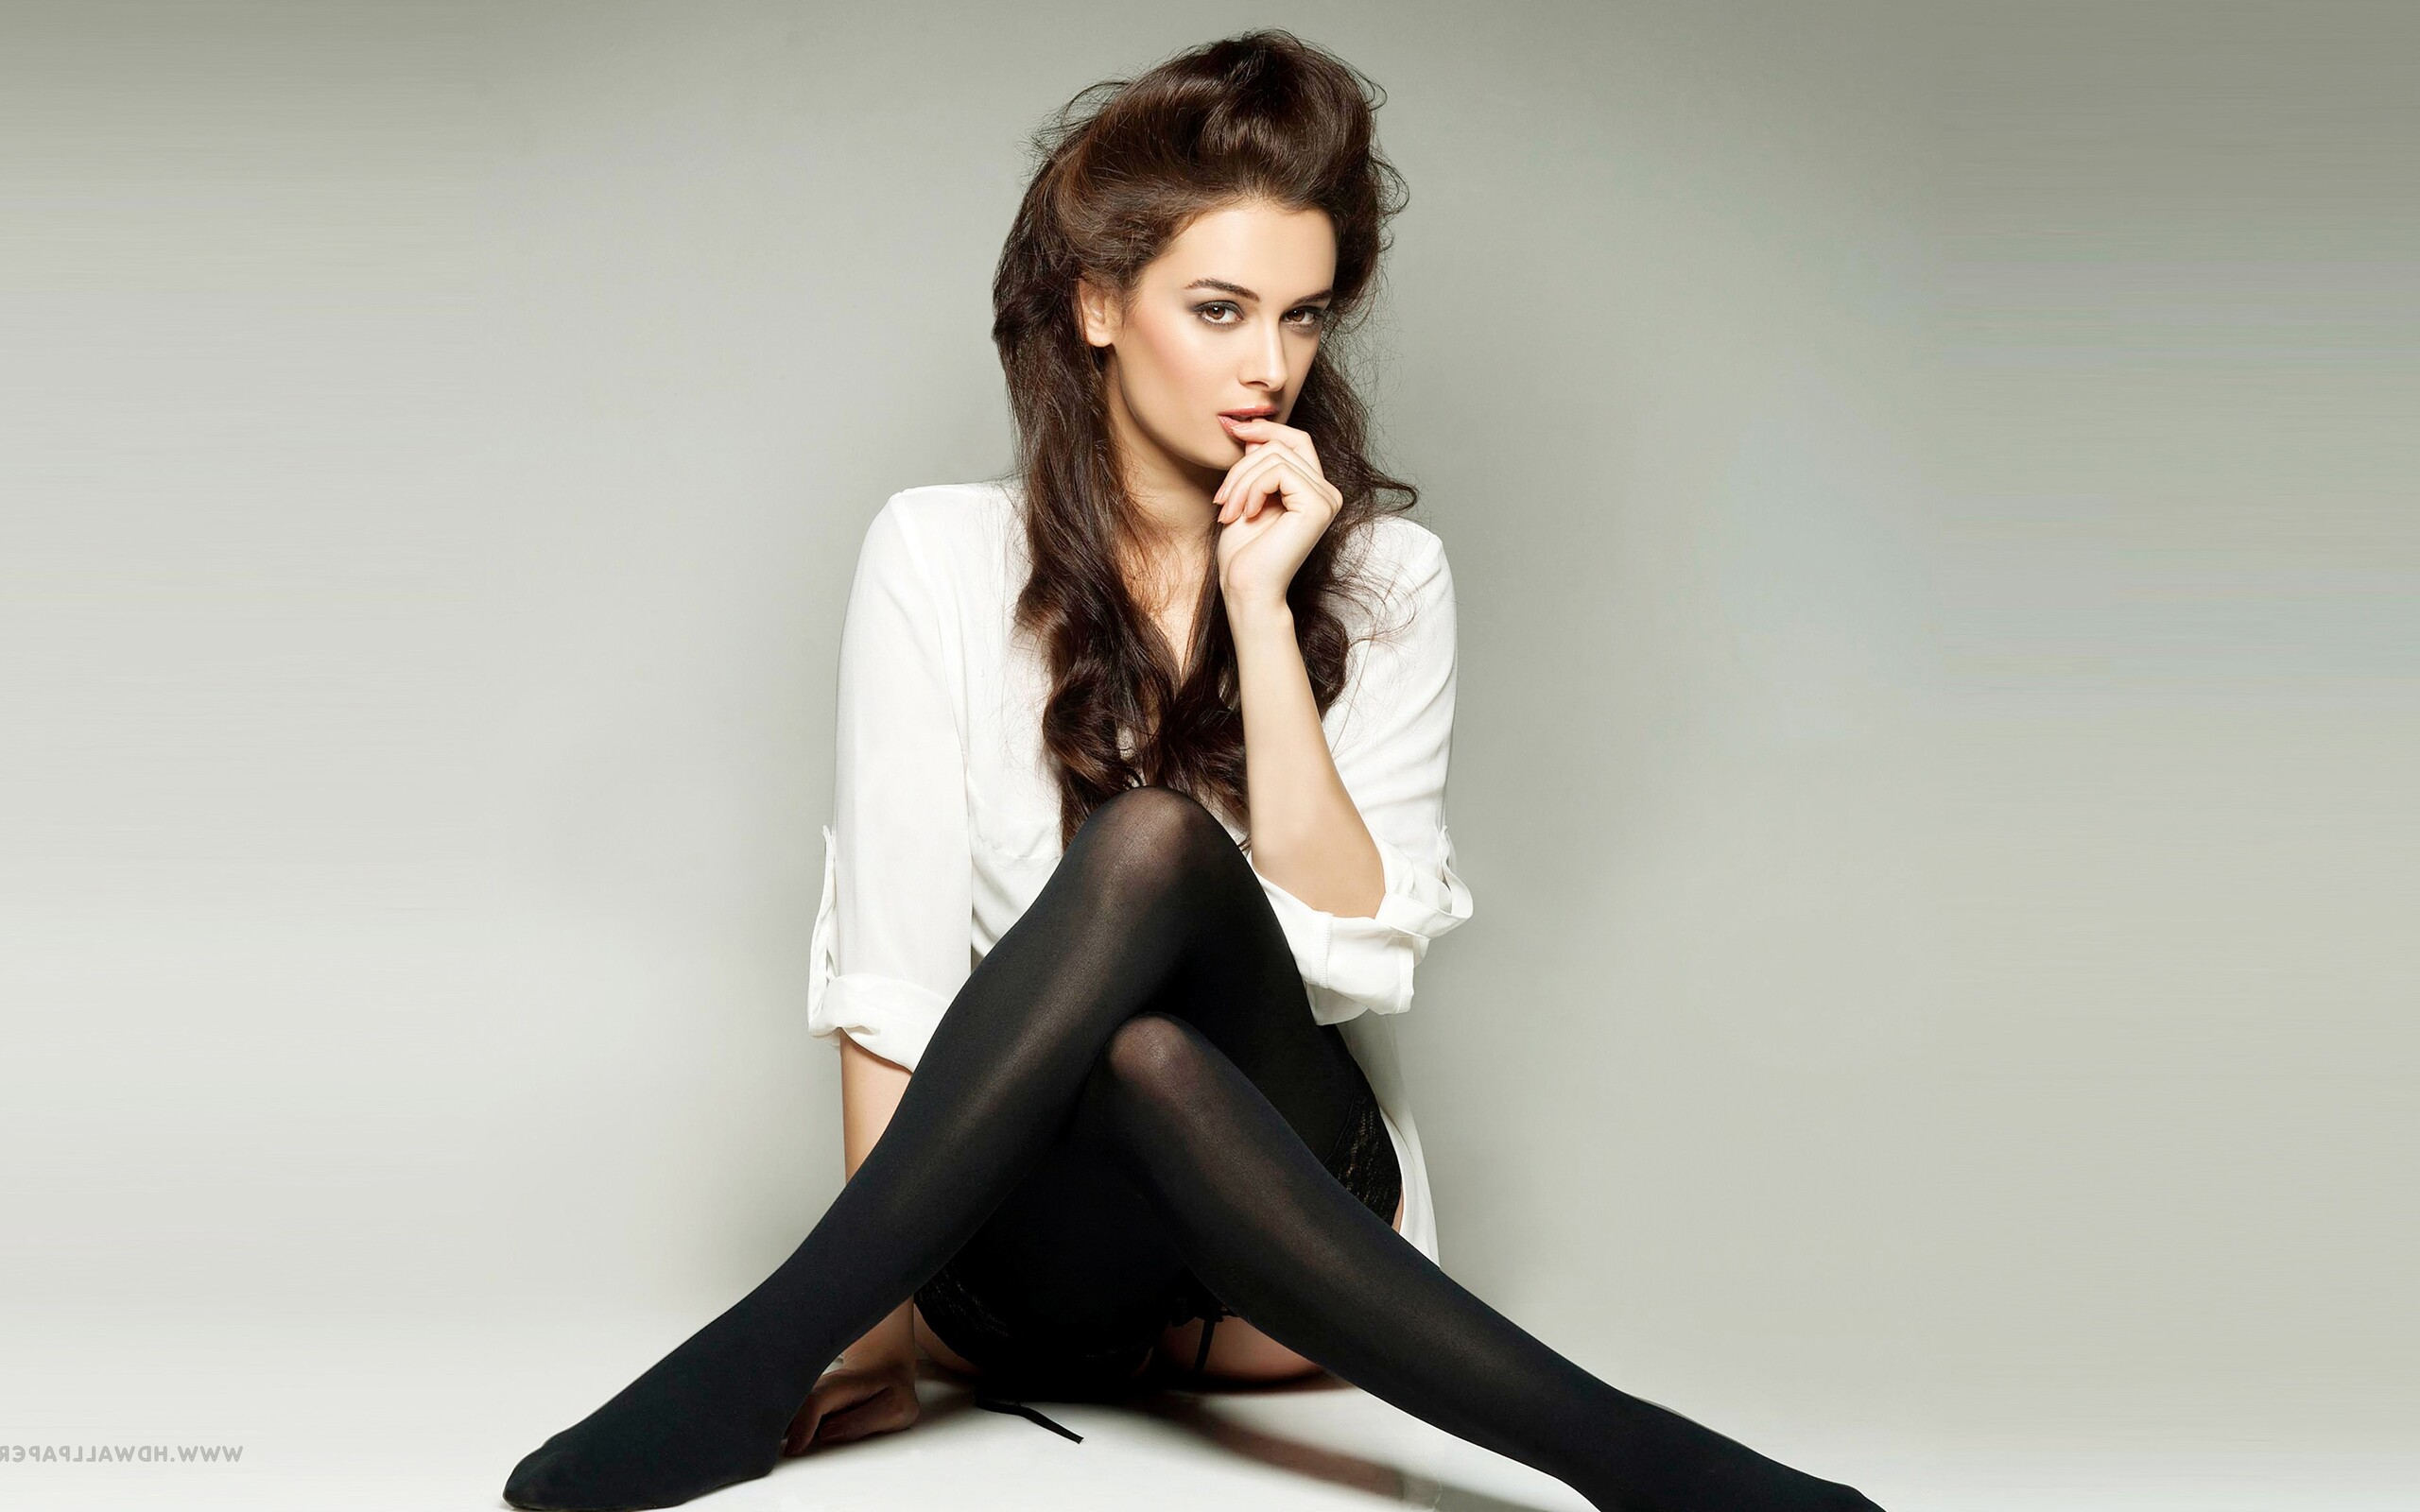 evelyn-sharma.jpg